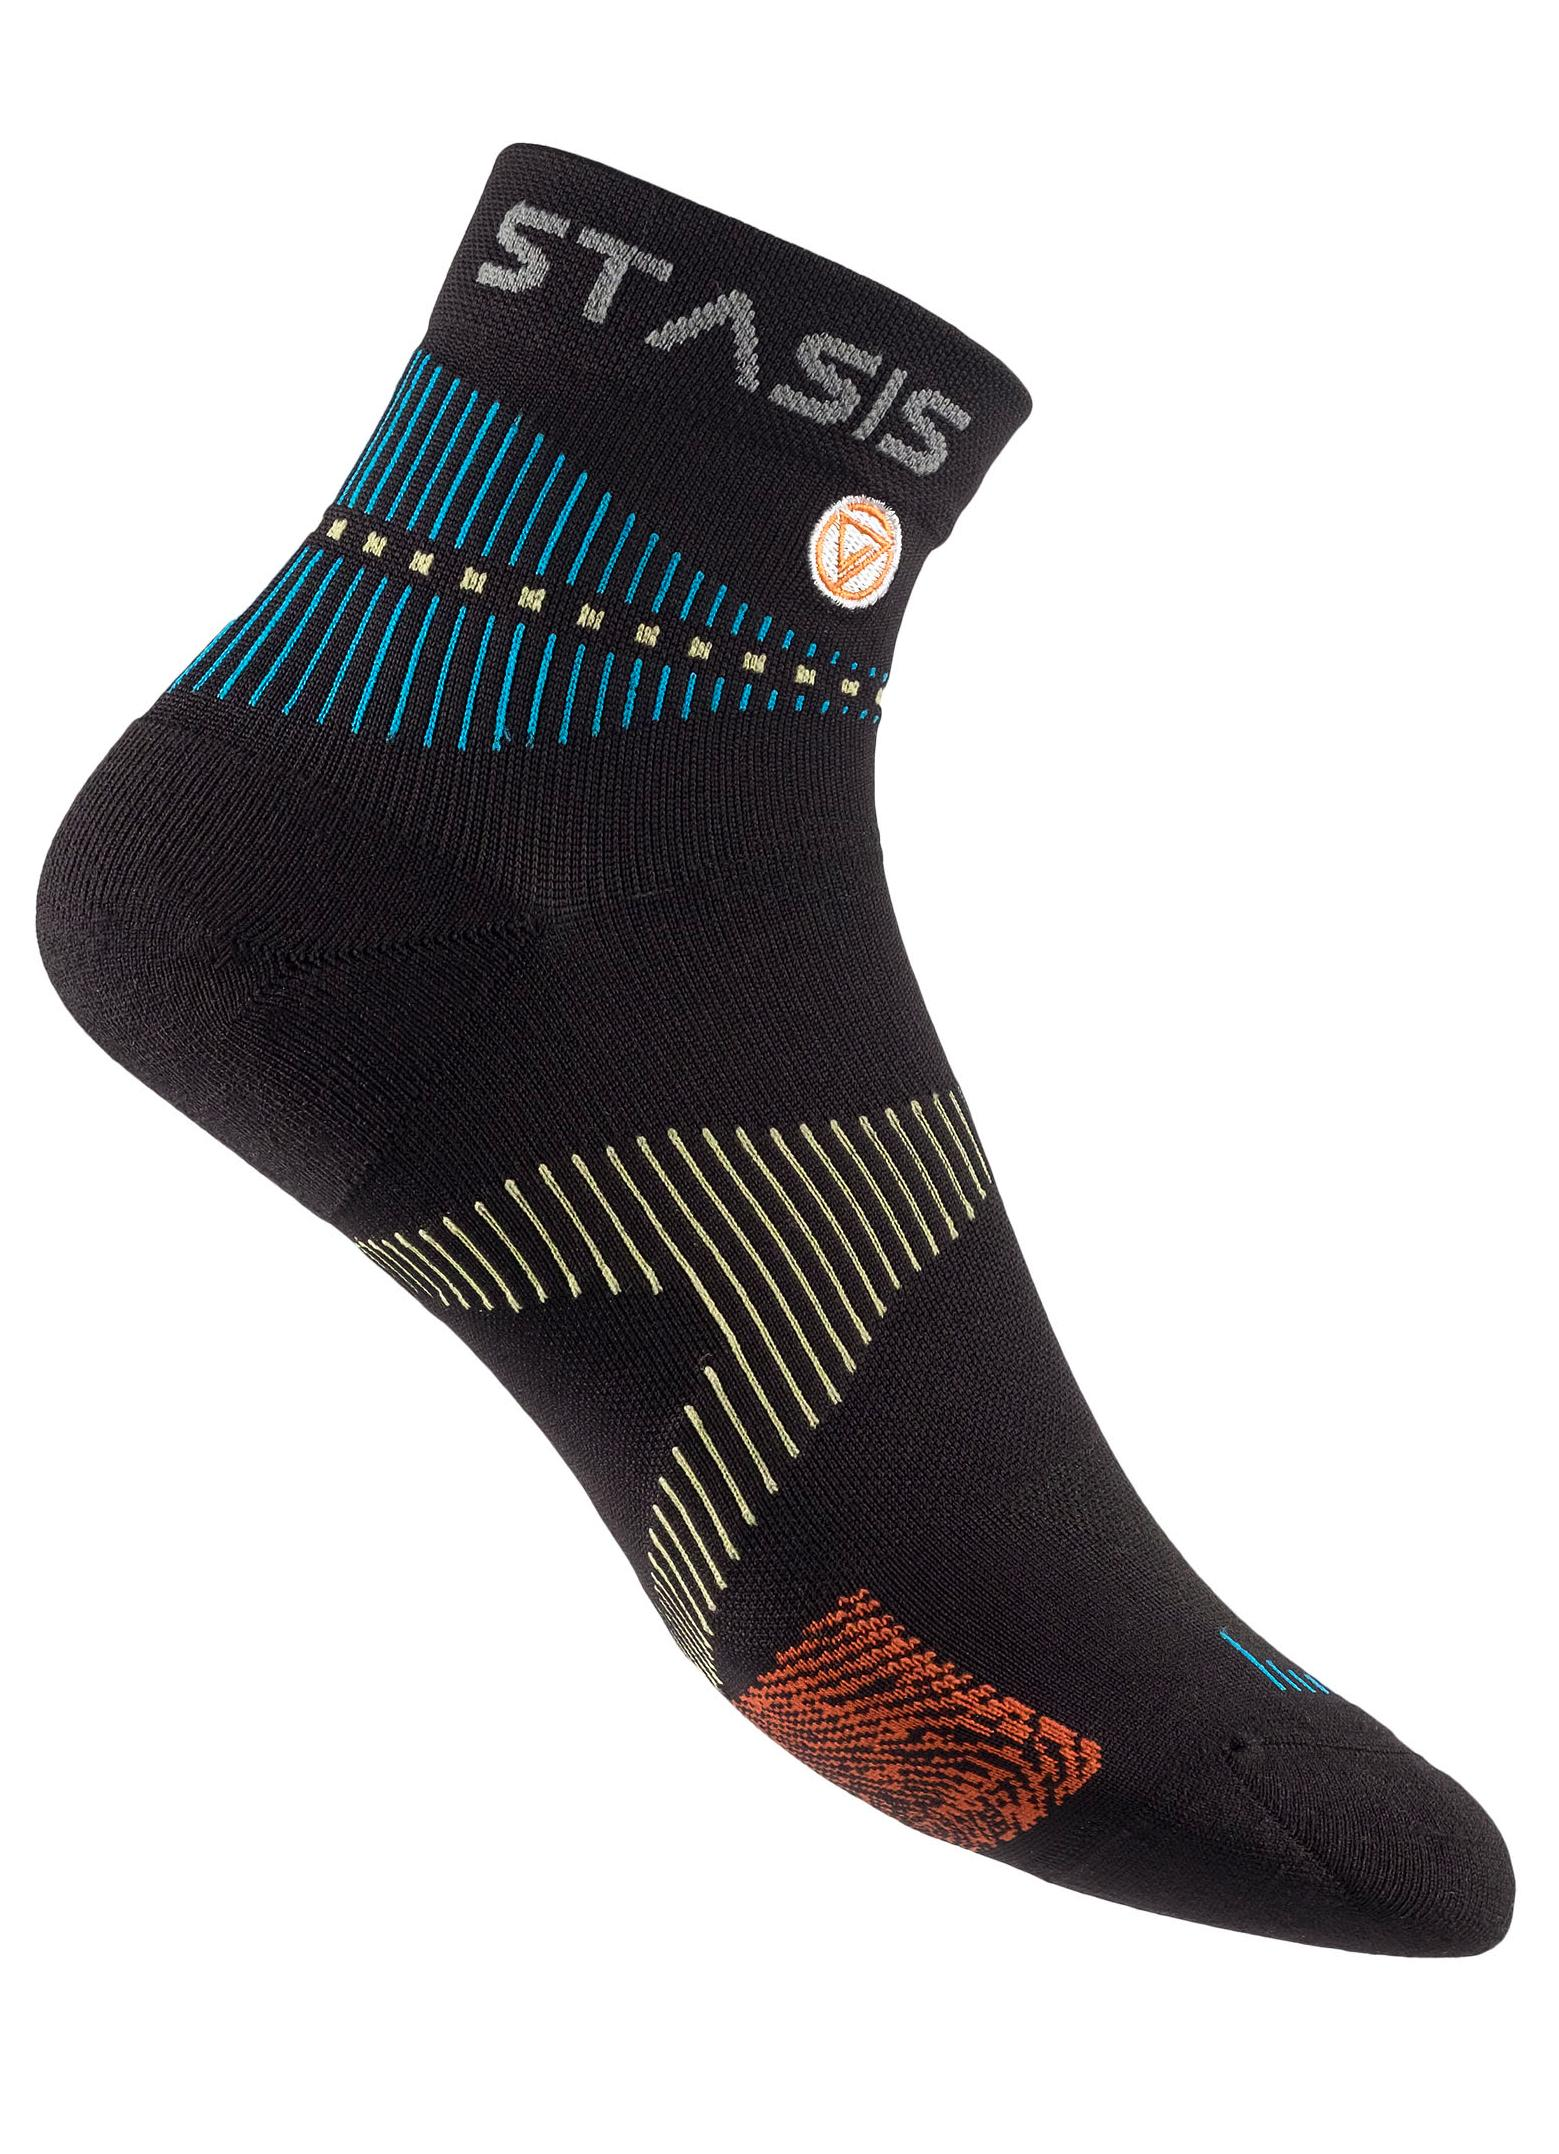 Neurosocks Athletic mit Soft-Touch Saum